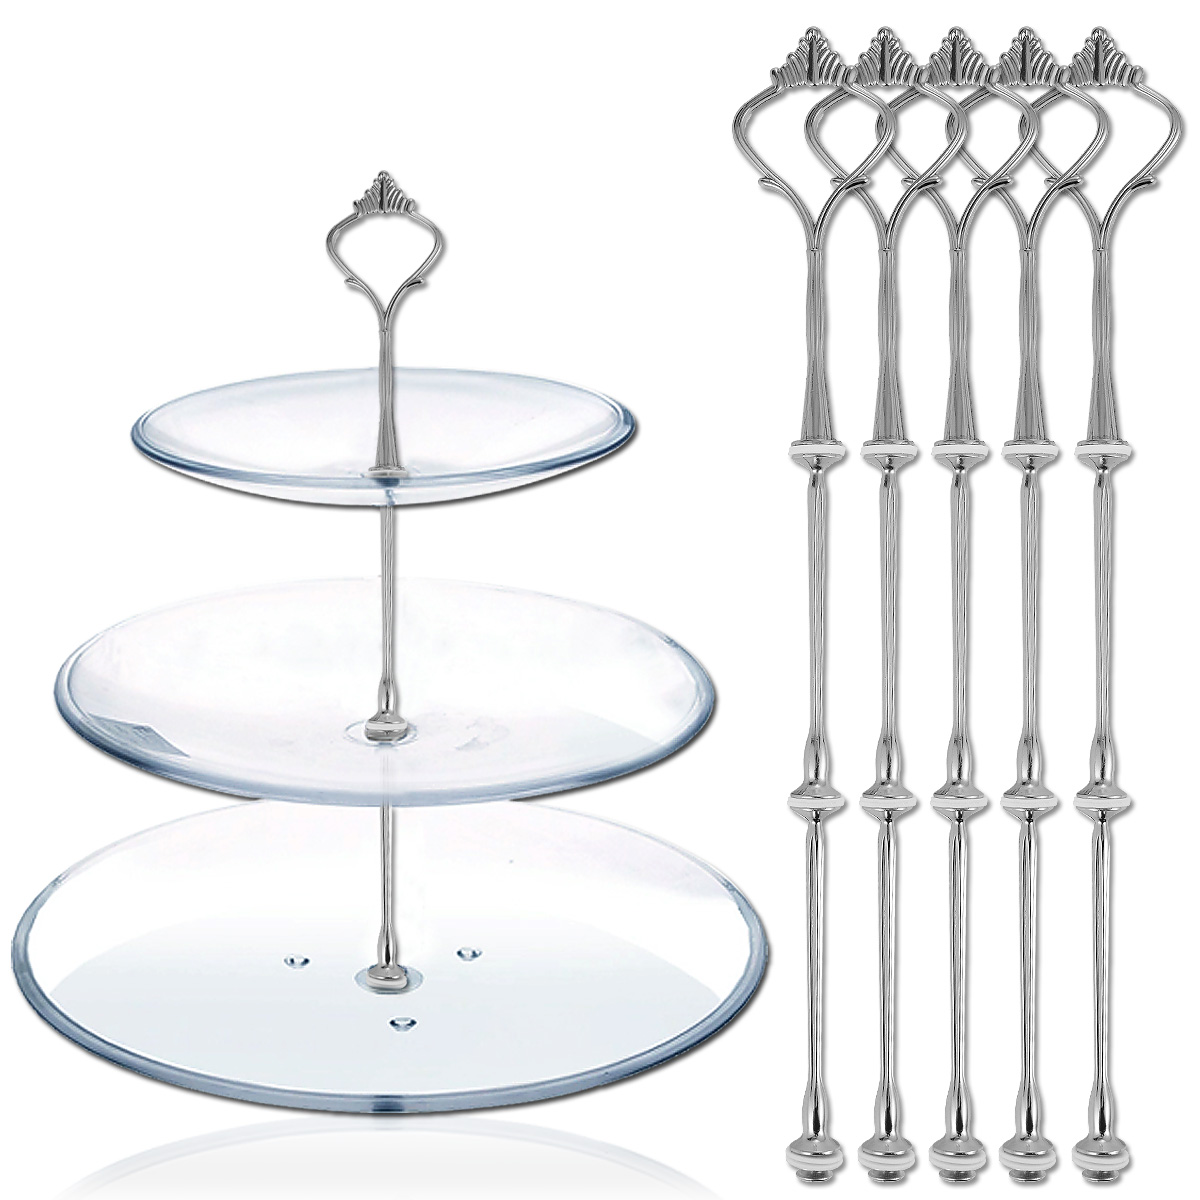 3 Silver 3 Tier Wedding Cake Plate Stand Fittings Metal Cake Plate Stands